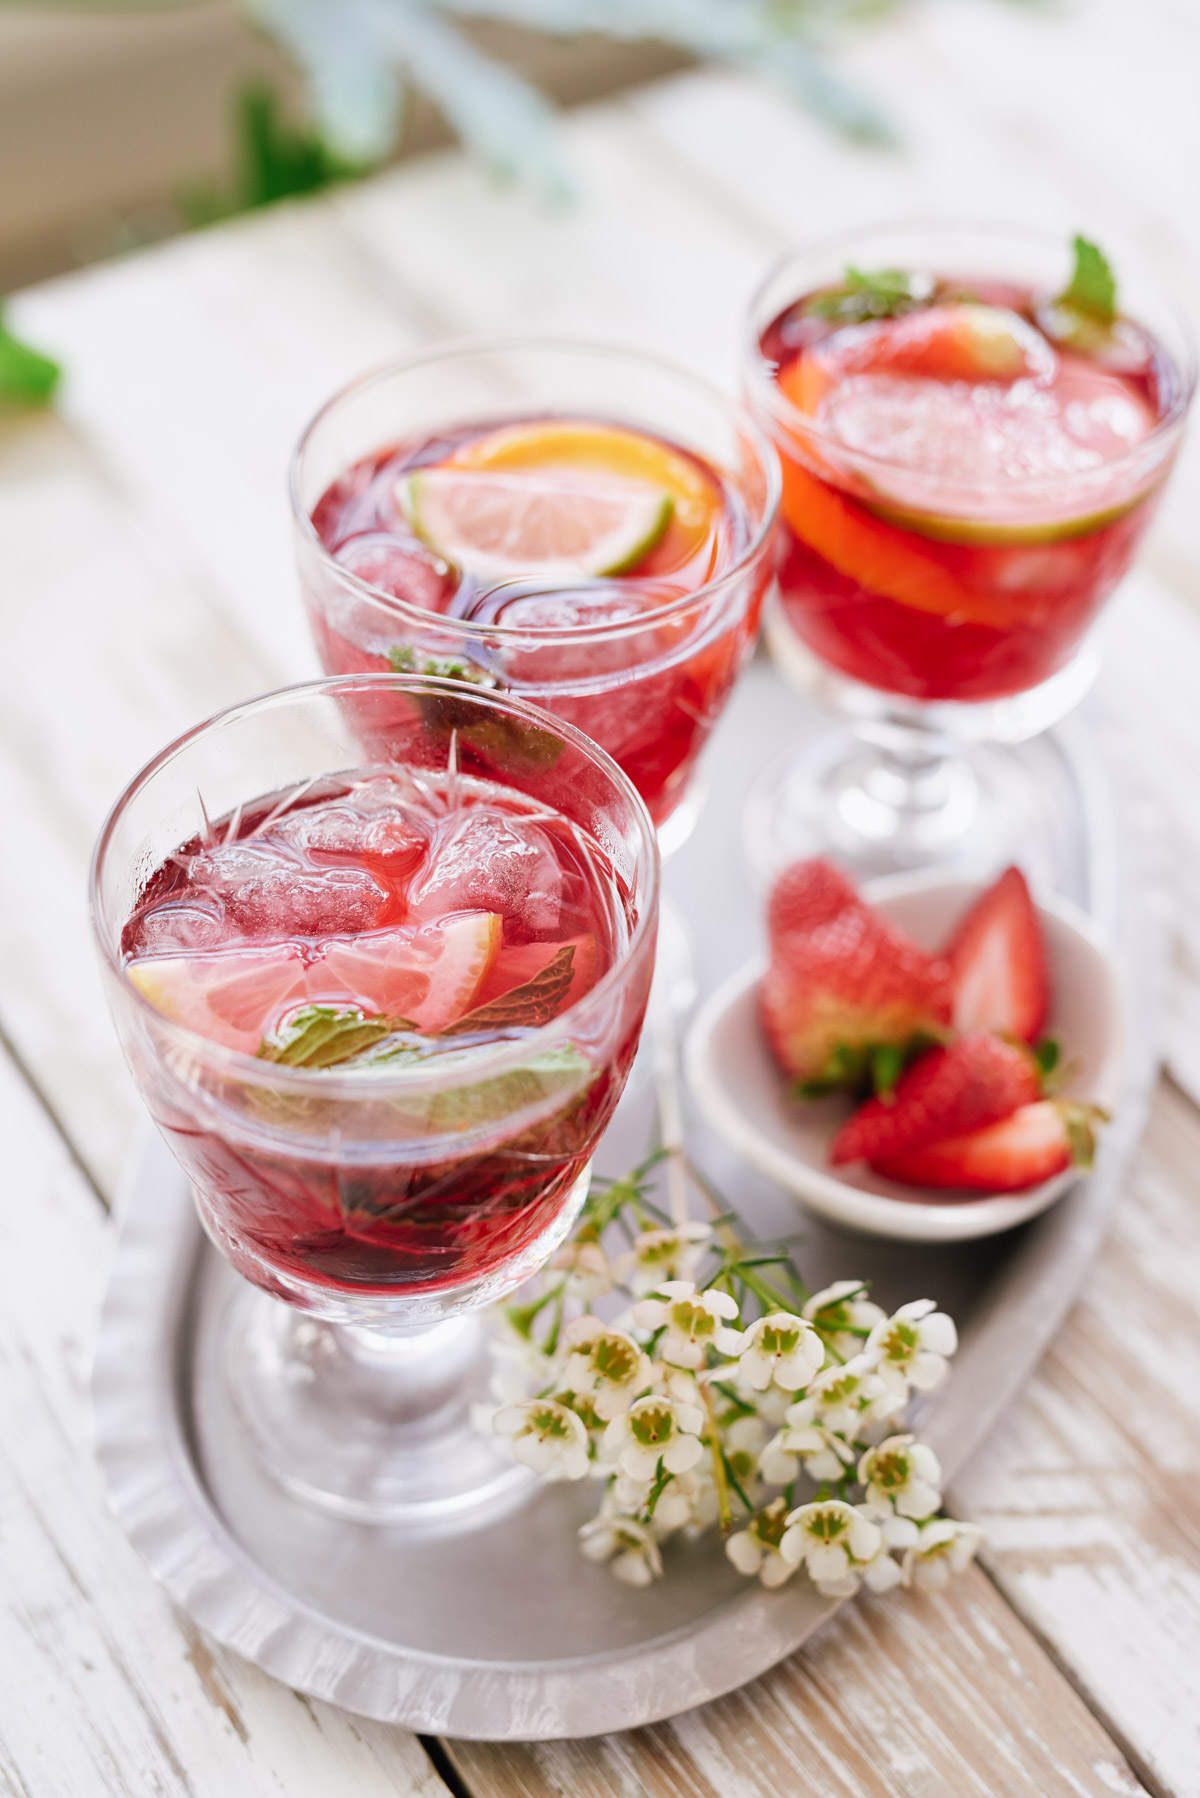 How to Make Sangria - Easy Recipe for Making This Popular Party Punch -- Cocktails by @frostedevents frostedblog